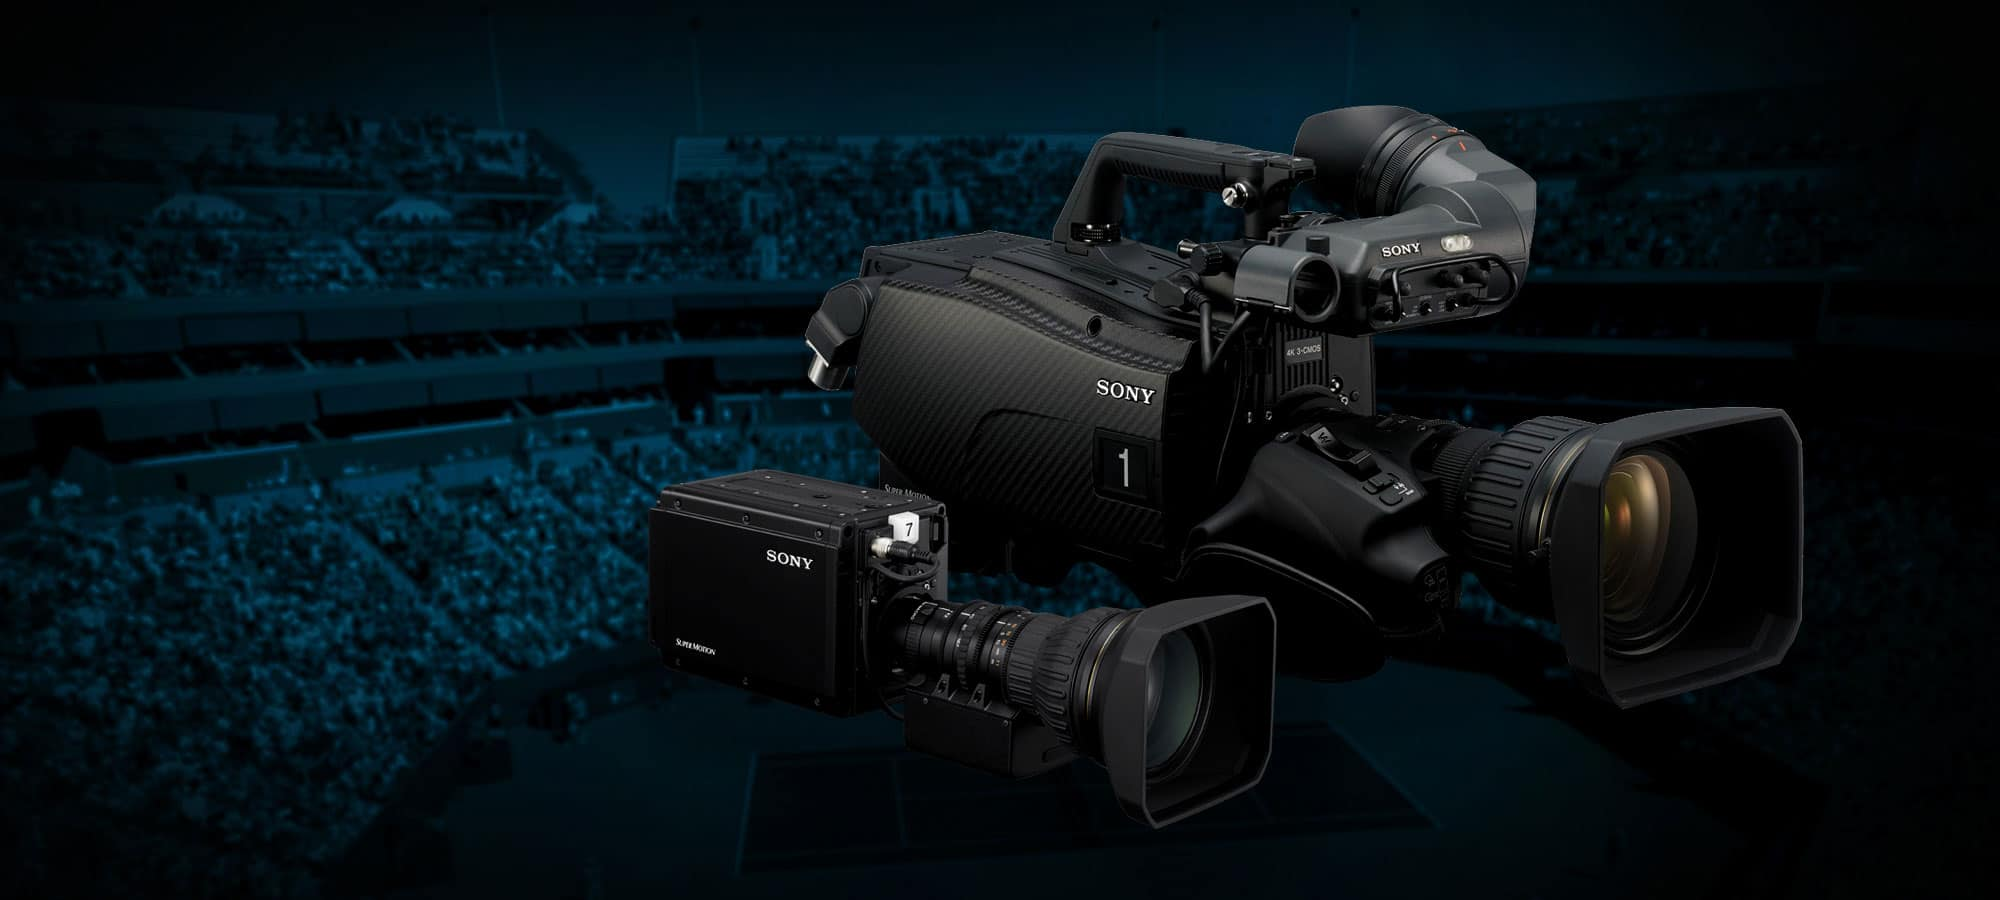 HD and 4K Broadcast Equipment Hire: Sony HDC-4300 and HDC-P43 4K Cameras